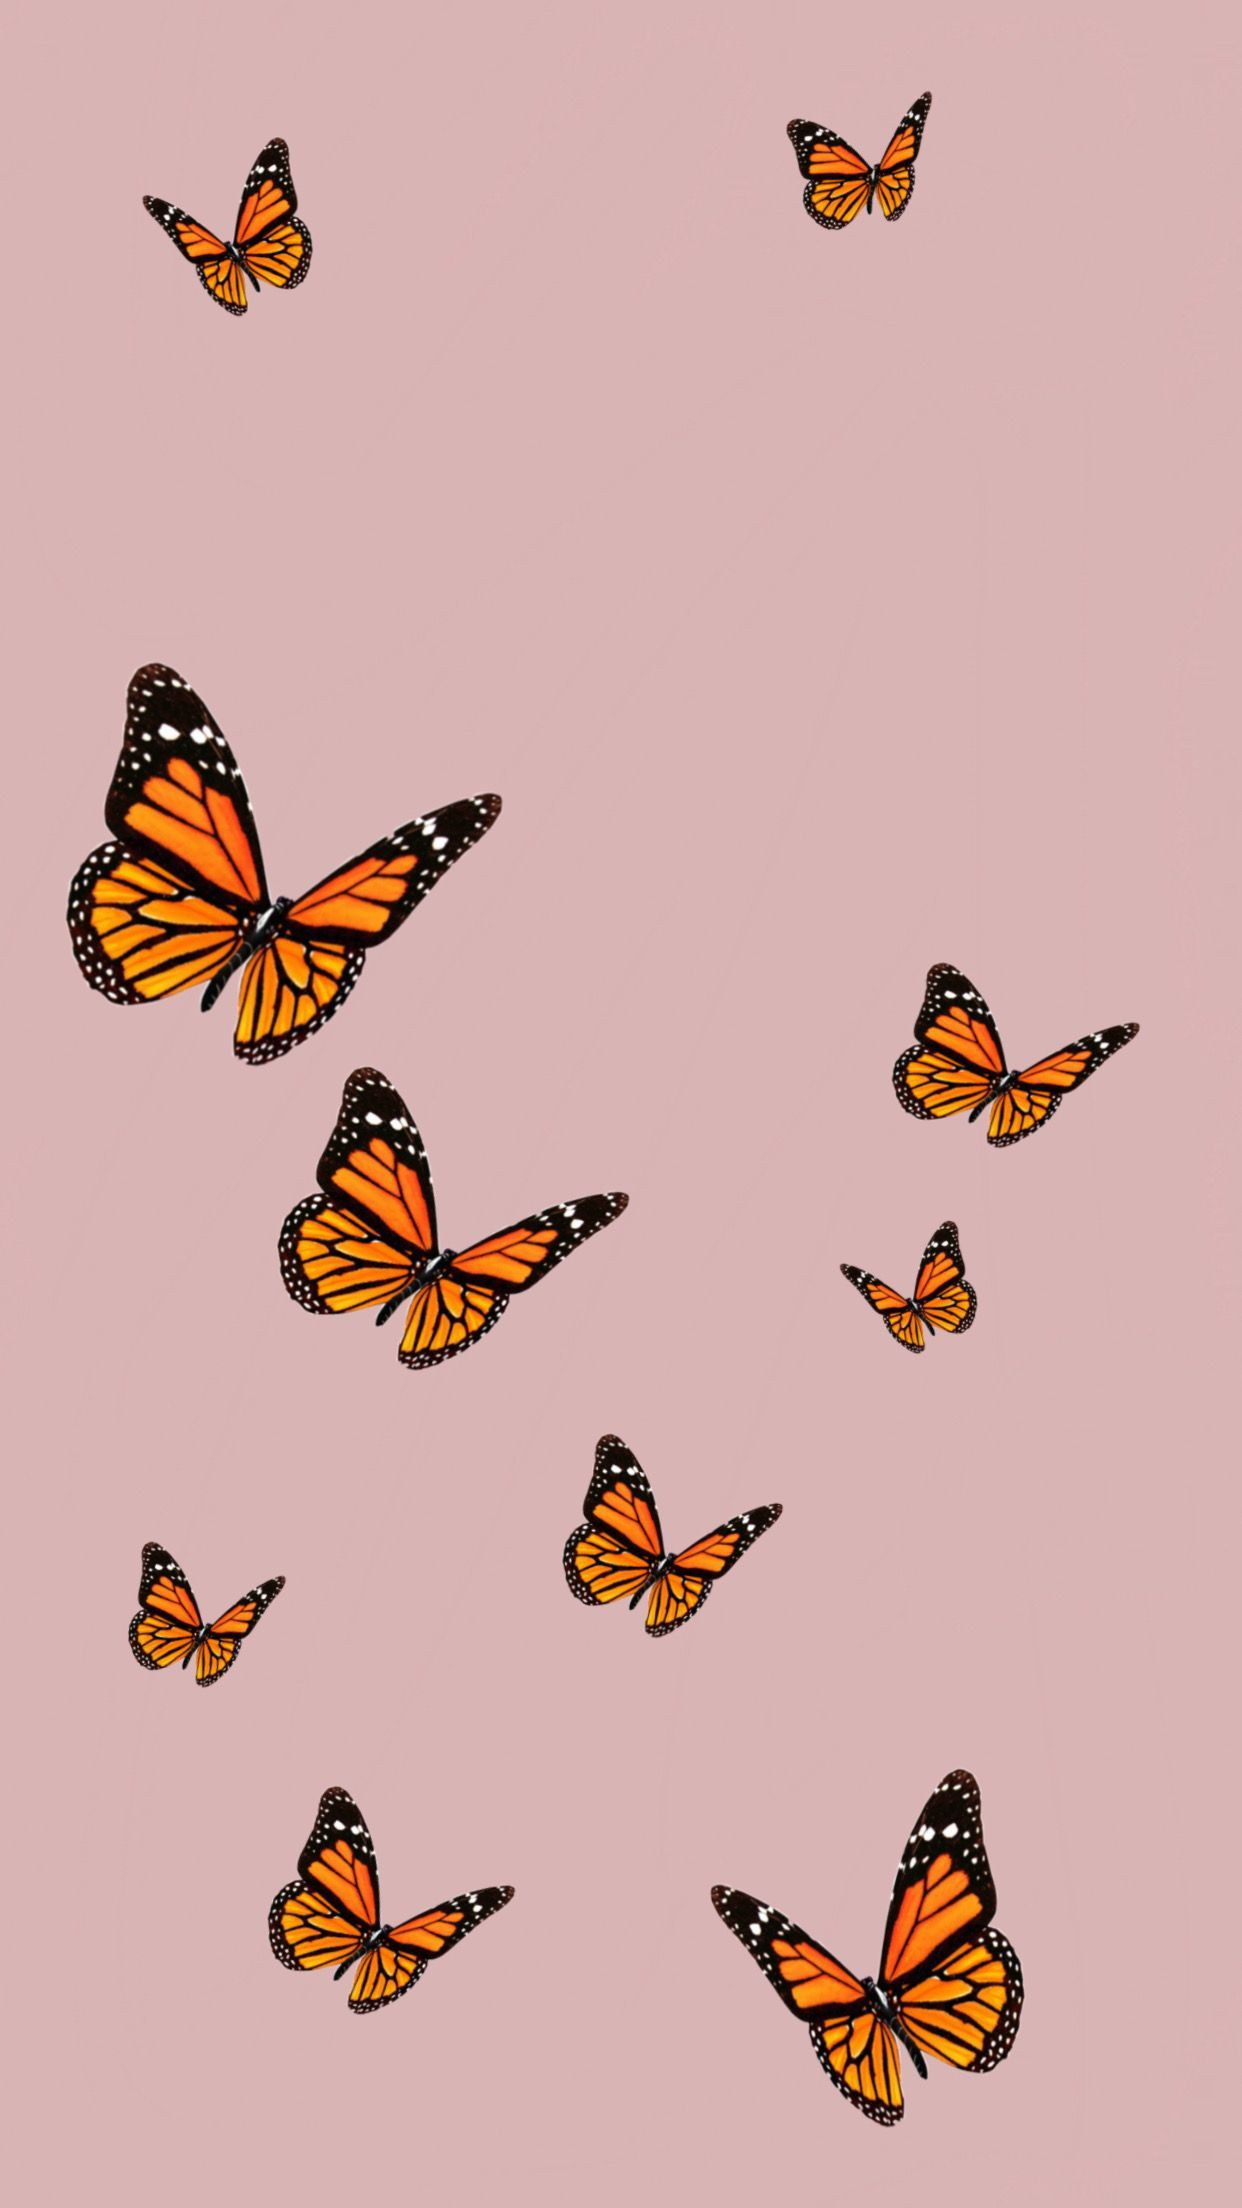 Credit Youtube Cali Kessy Disneyphonebackgrounds In 2020 Butterfly Wallpaper Iphone Wallpaper Iphone Cute Butterfly Wallpaper